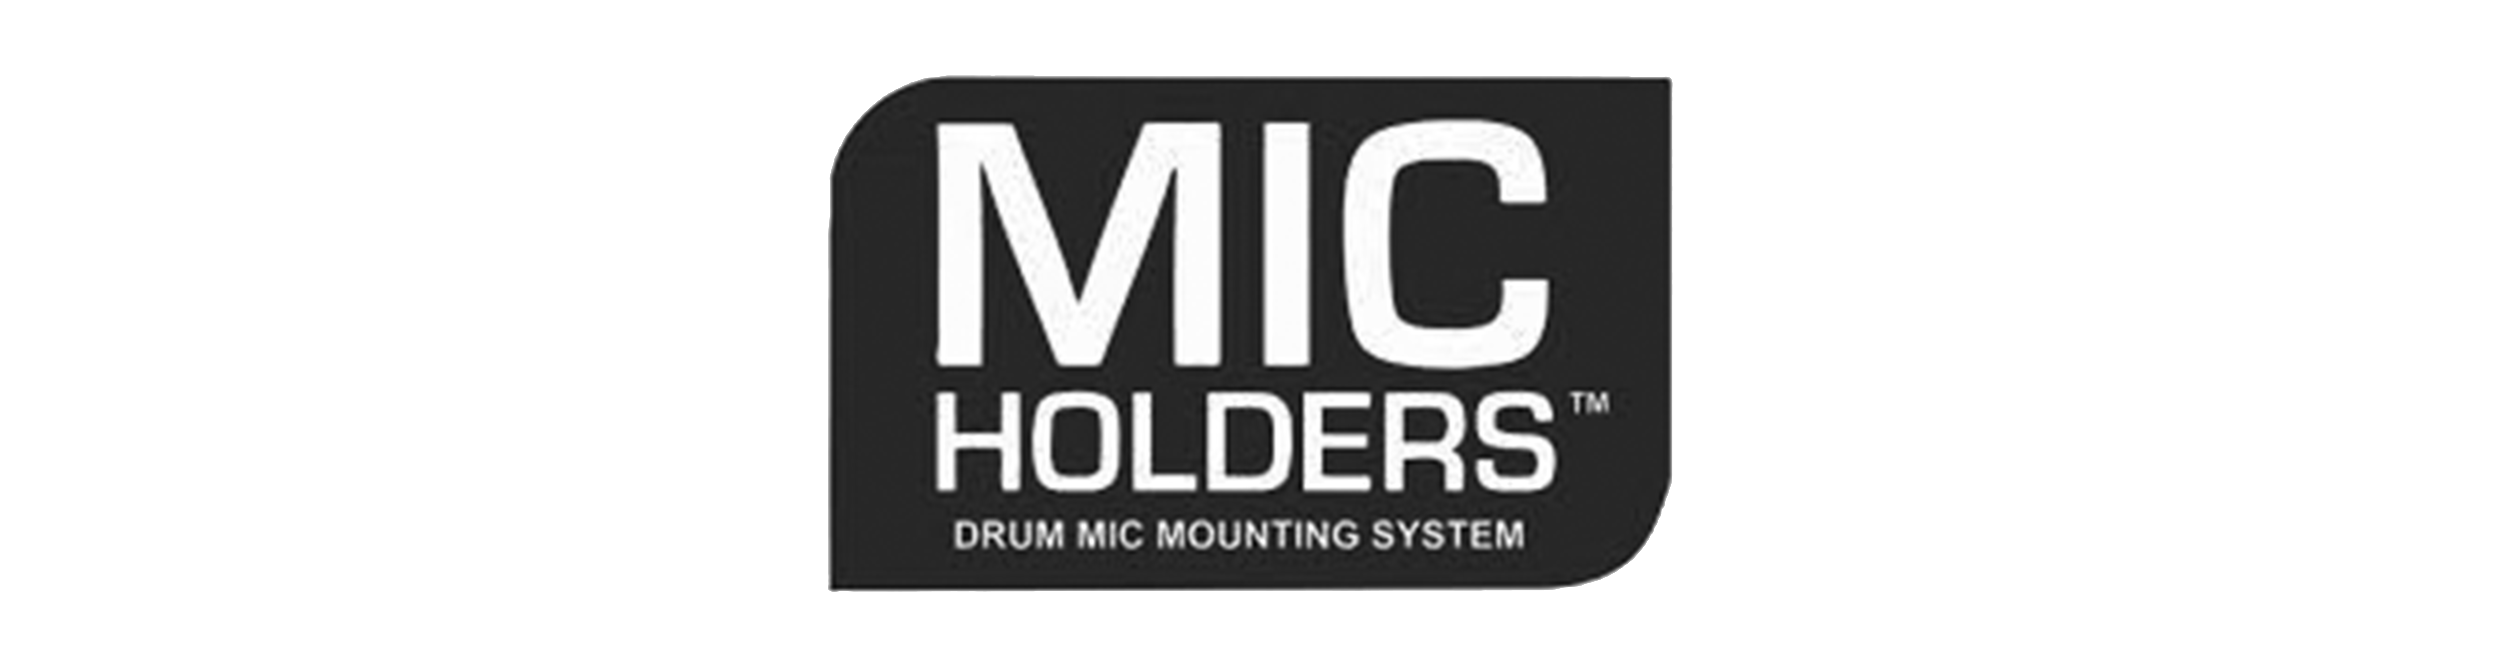 Productos - MIC HOLDERS